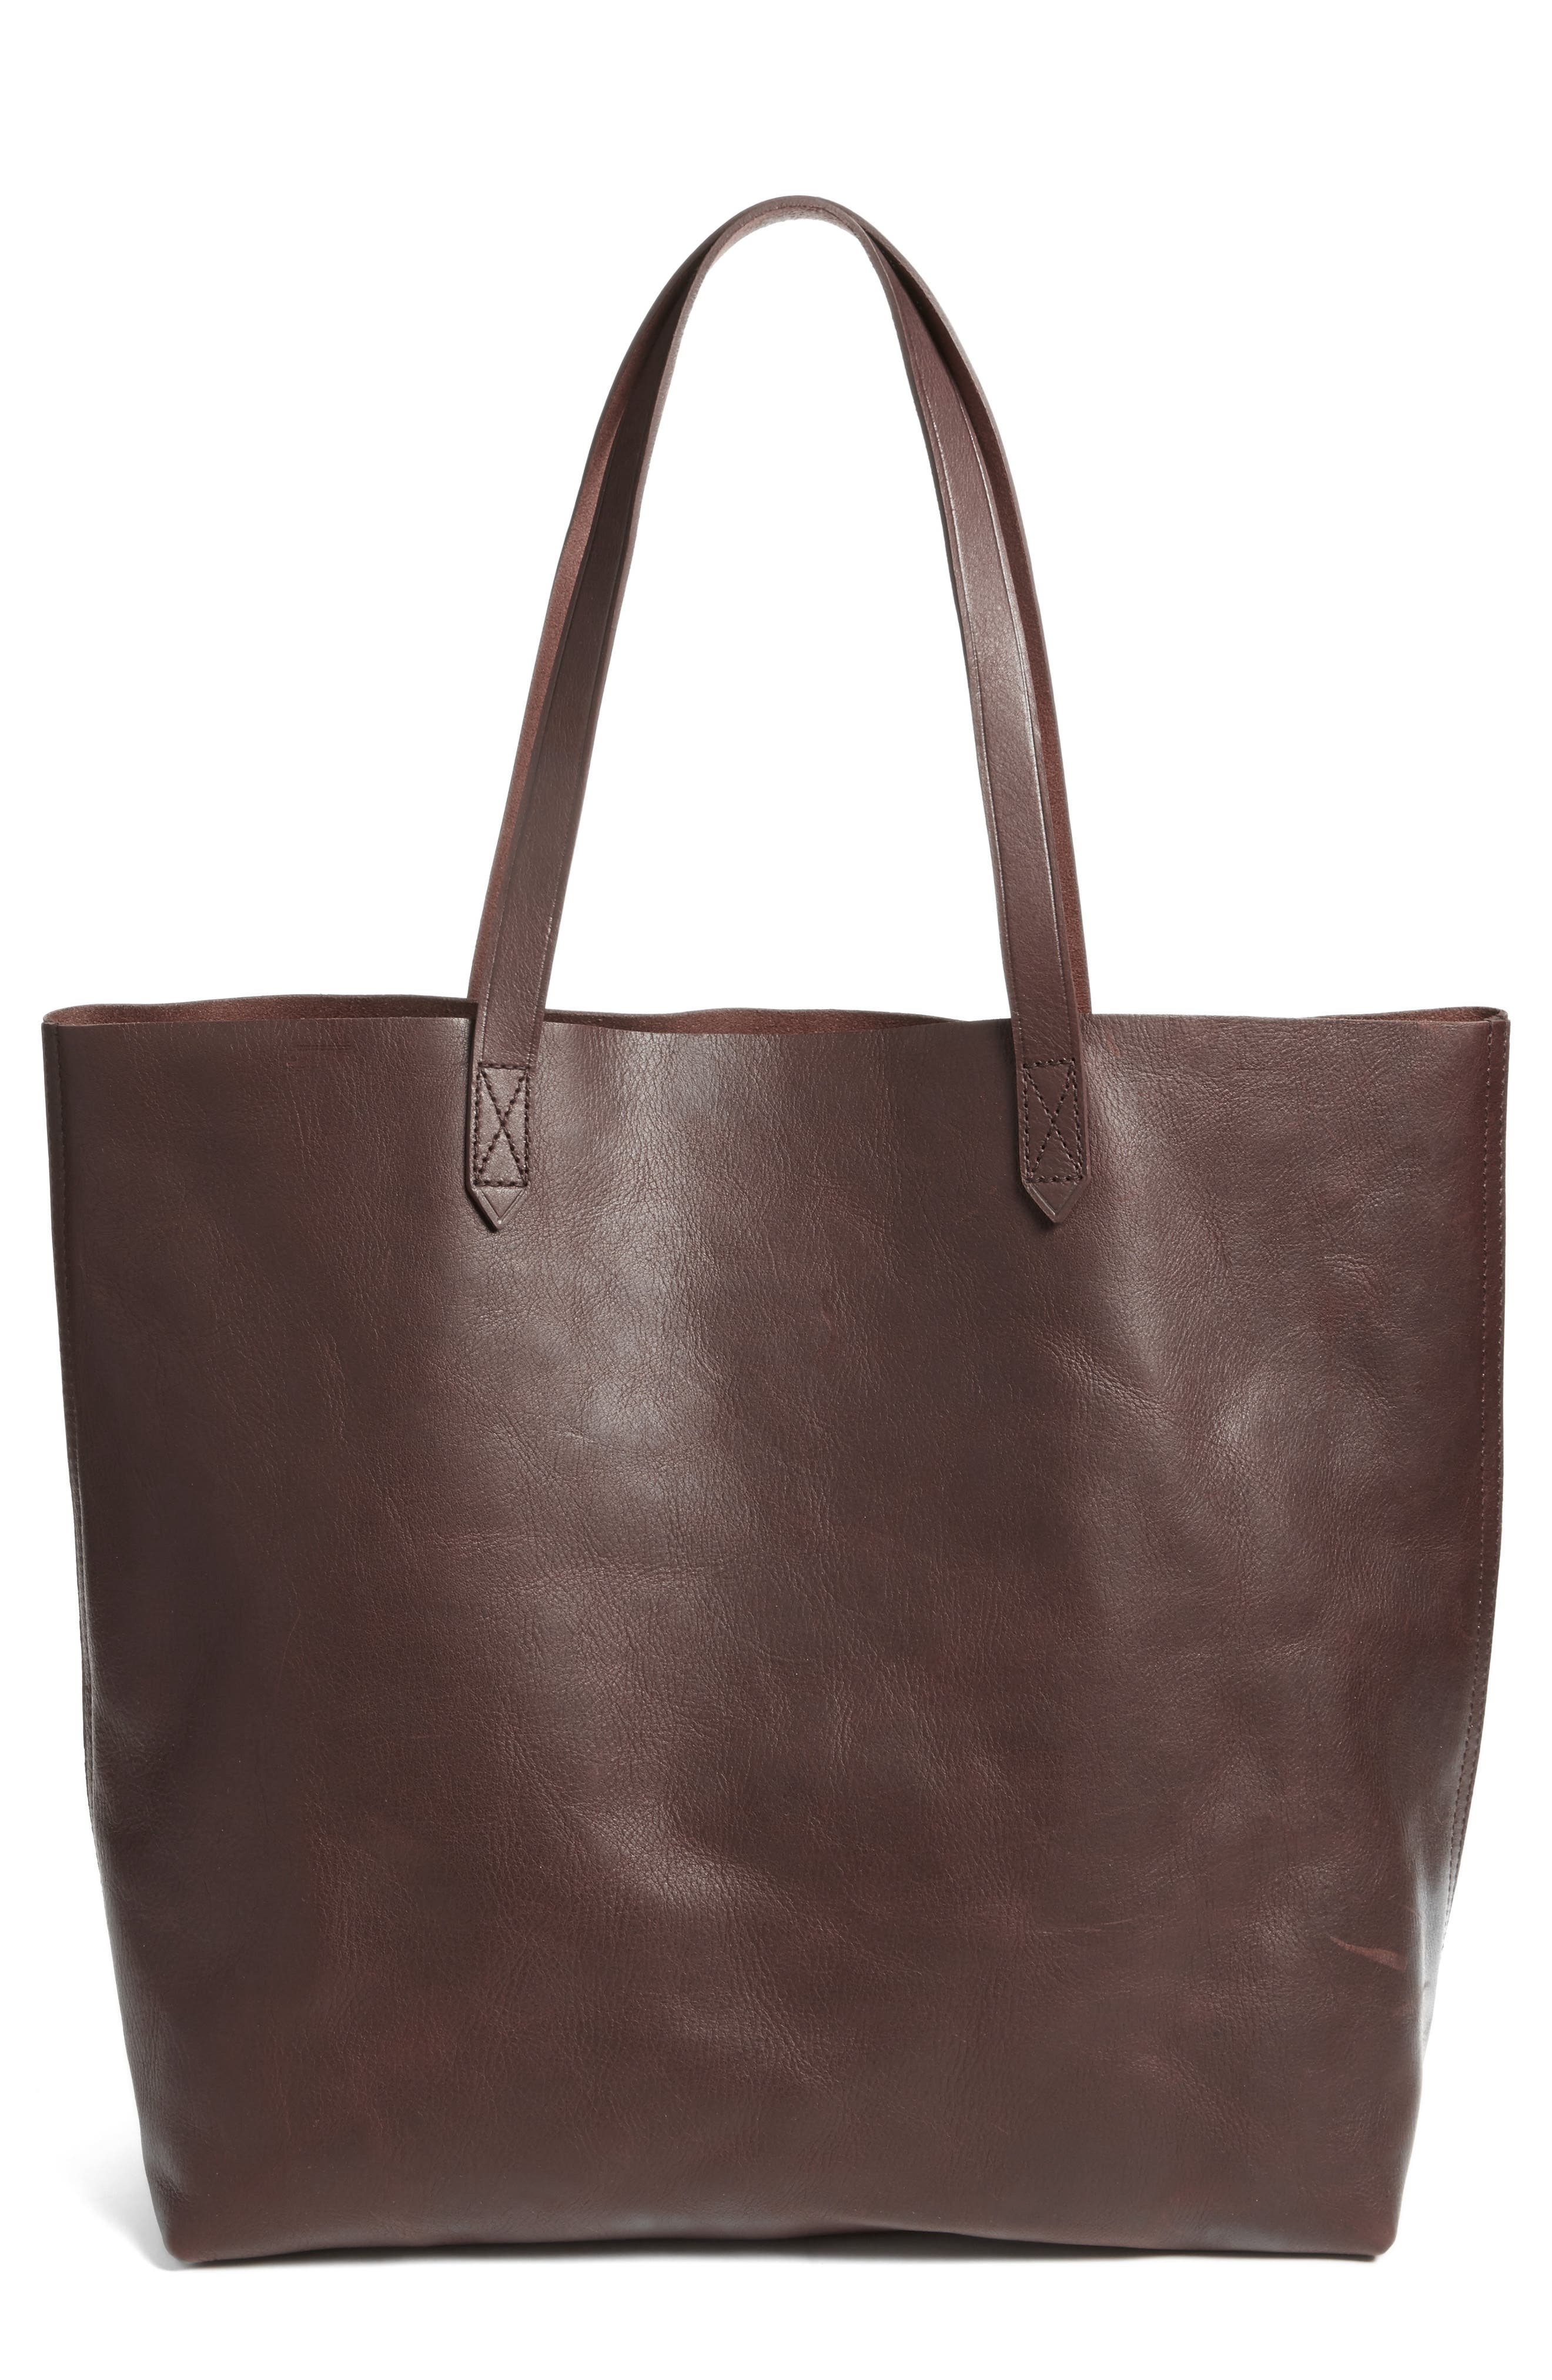 Transport Leather Tote,                             Main thumbnail 1, color,                             606